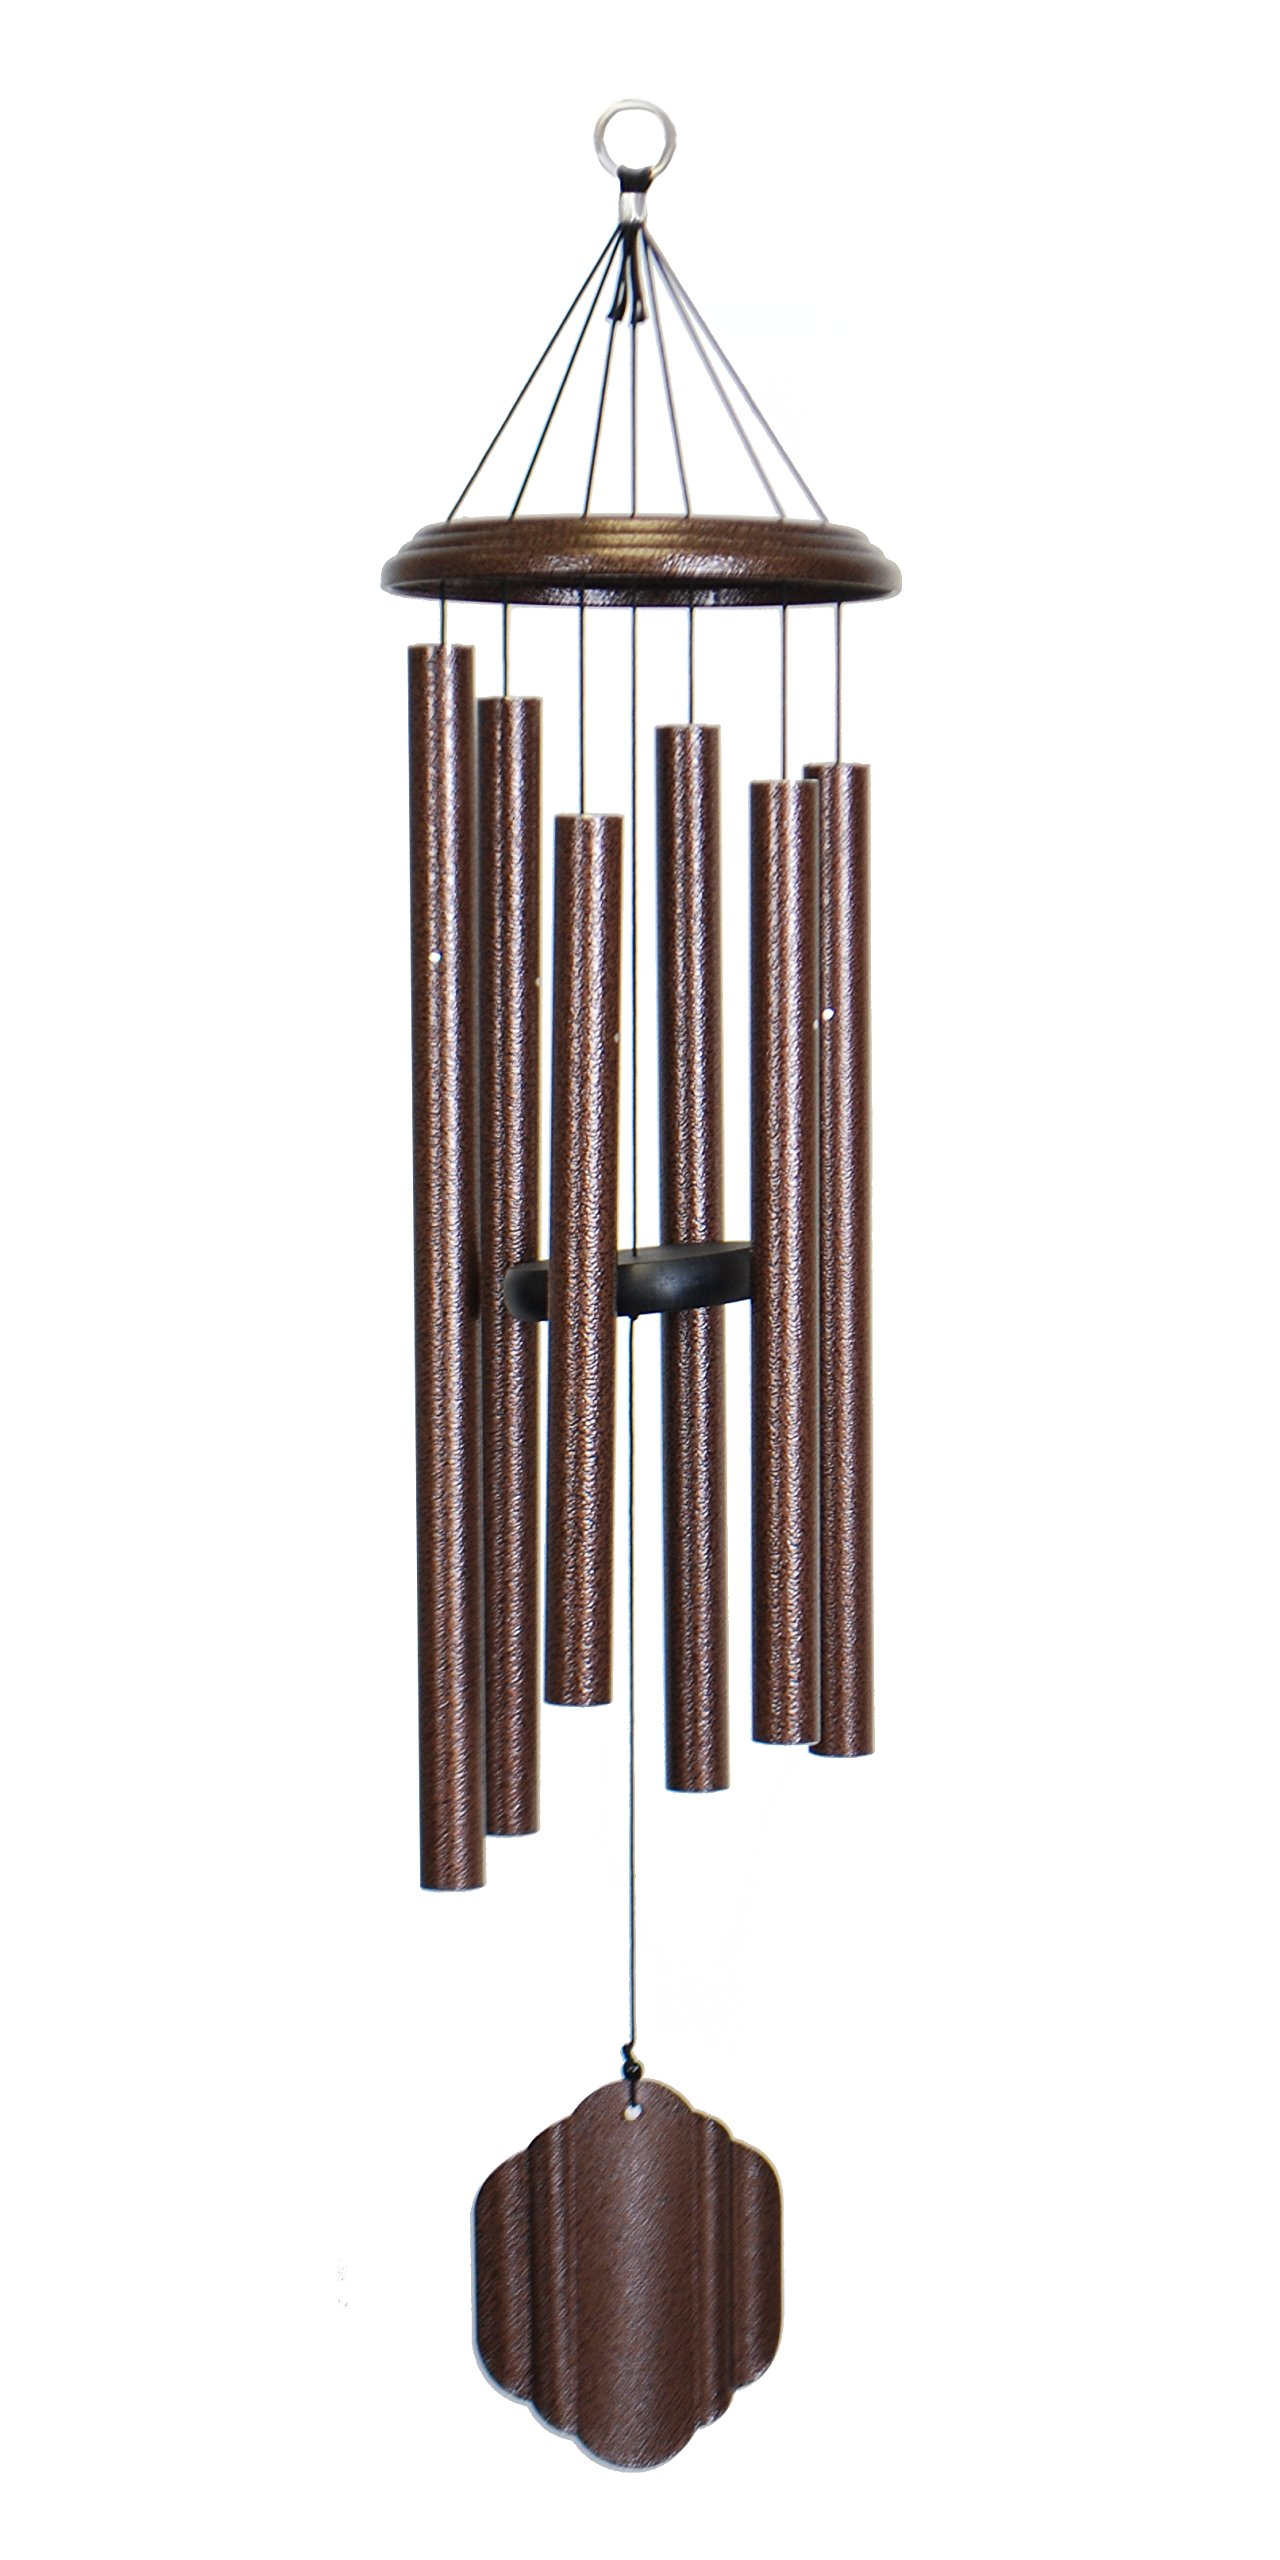 Bells of Vienna 36-inch Windchime, Copper Vein